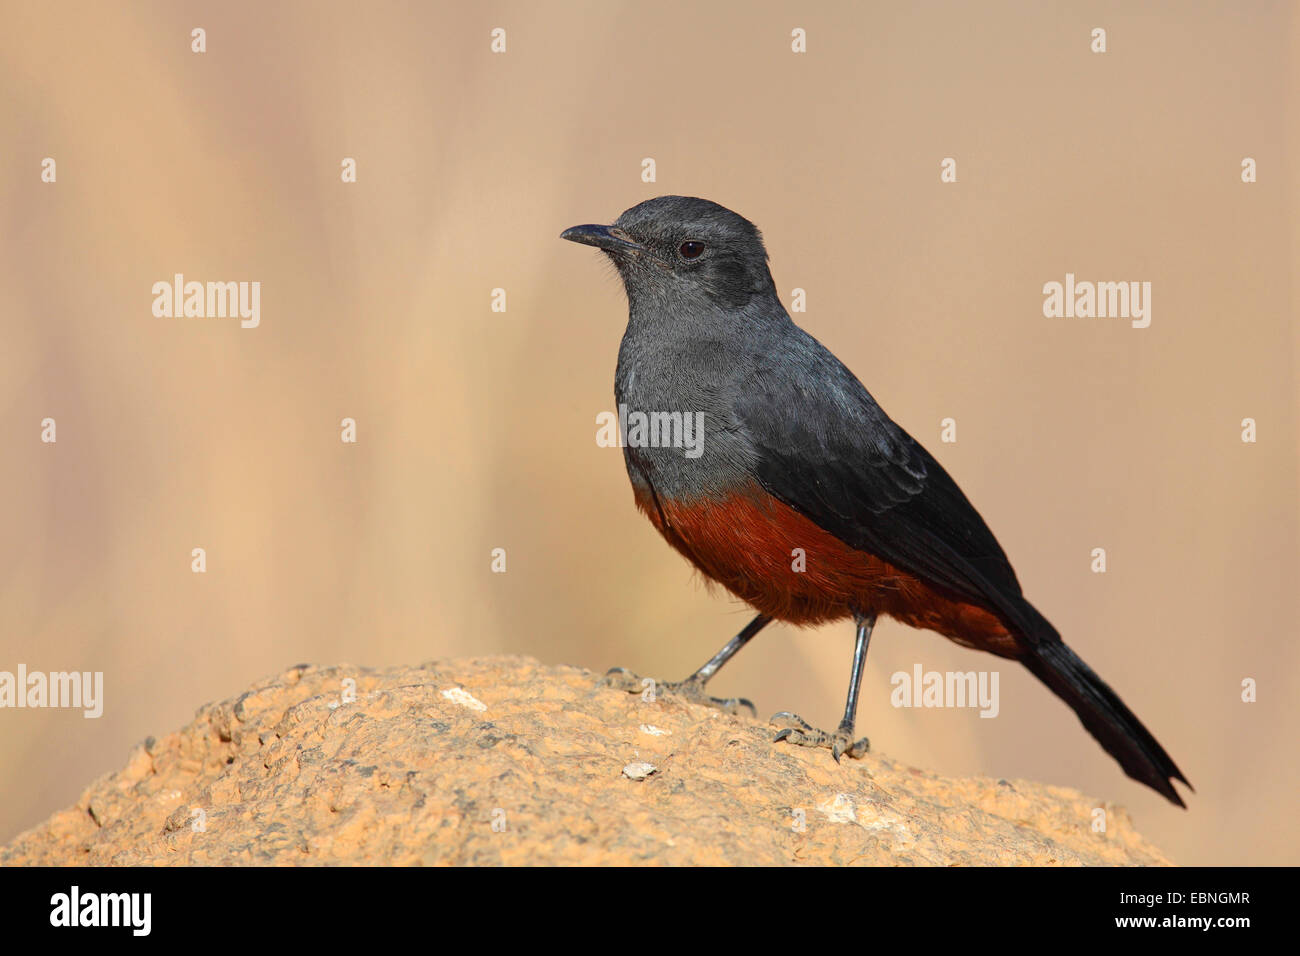 mocking cliffchat (Myrmecocichla cinnamomeiventris), female sits on a stone, South Africa, Pilanesberg National - Stock Image